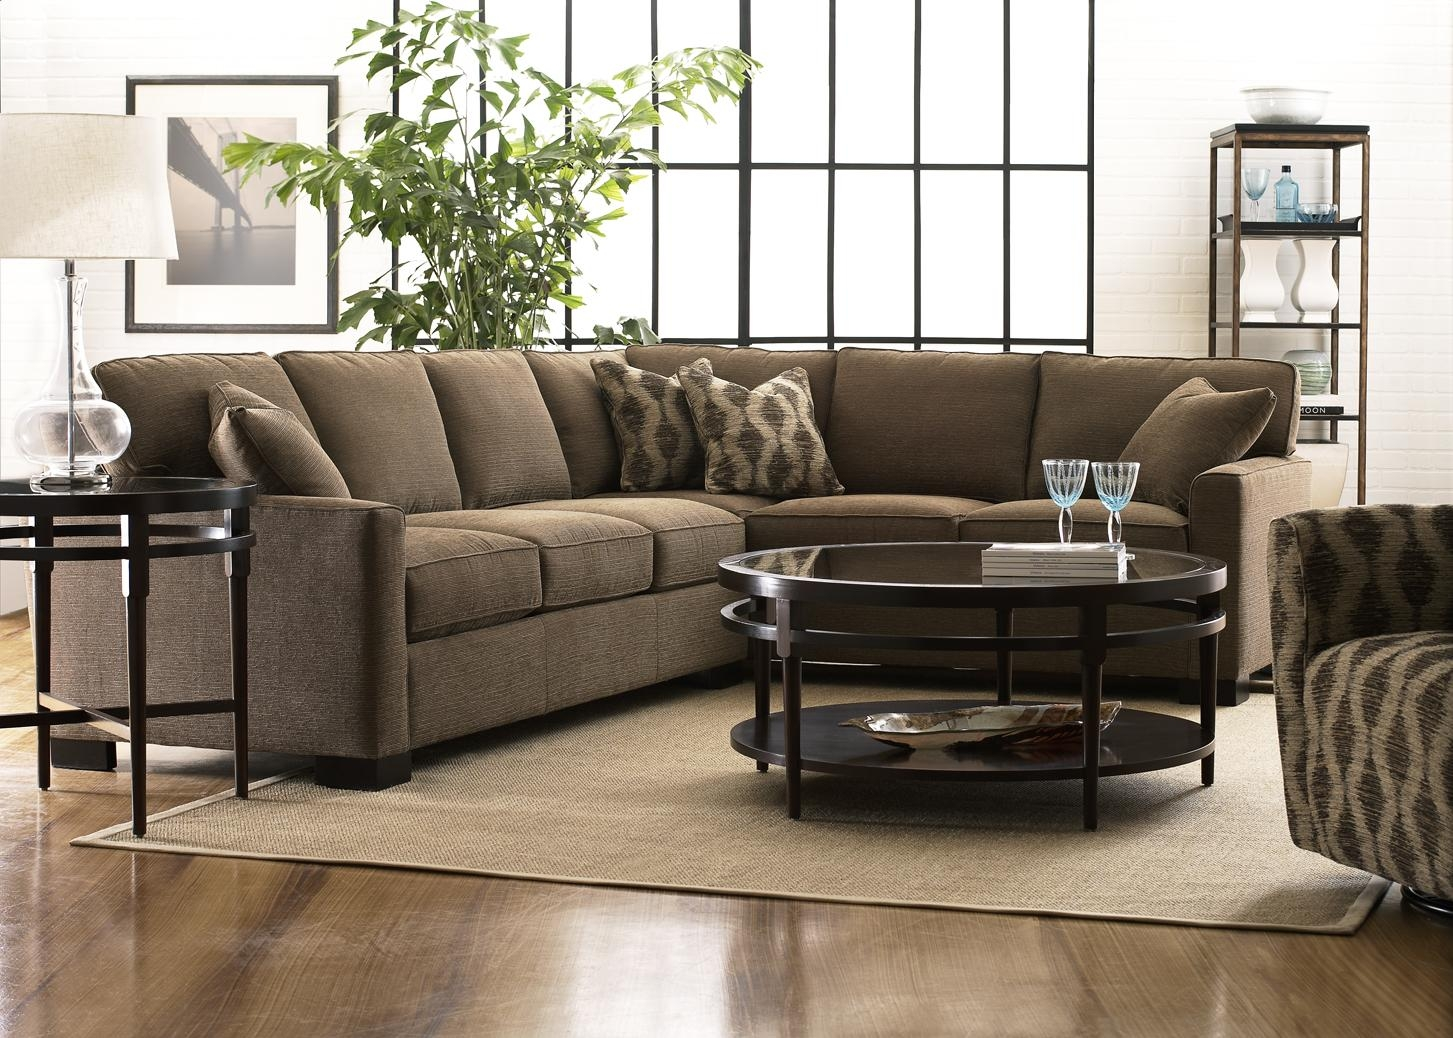 Style Loveseats For Small Spaces — Interior Exterior Homie For Sectional Small Spaces (View 15 of 20)